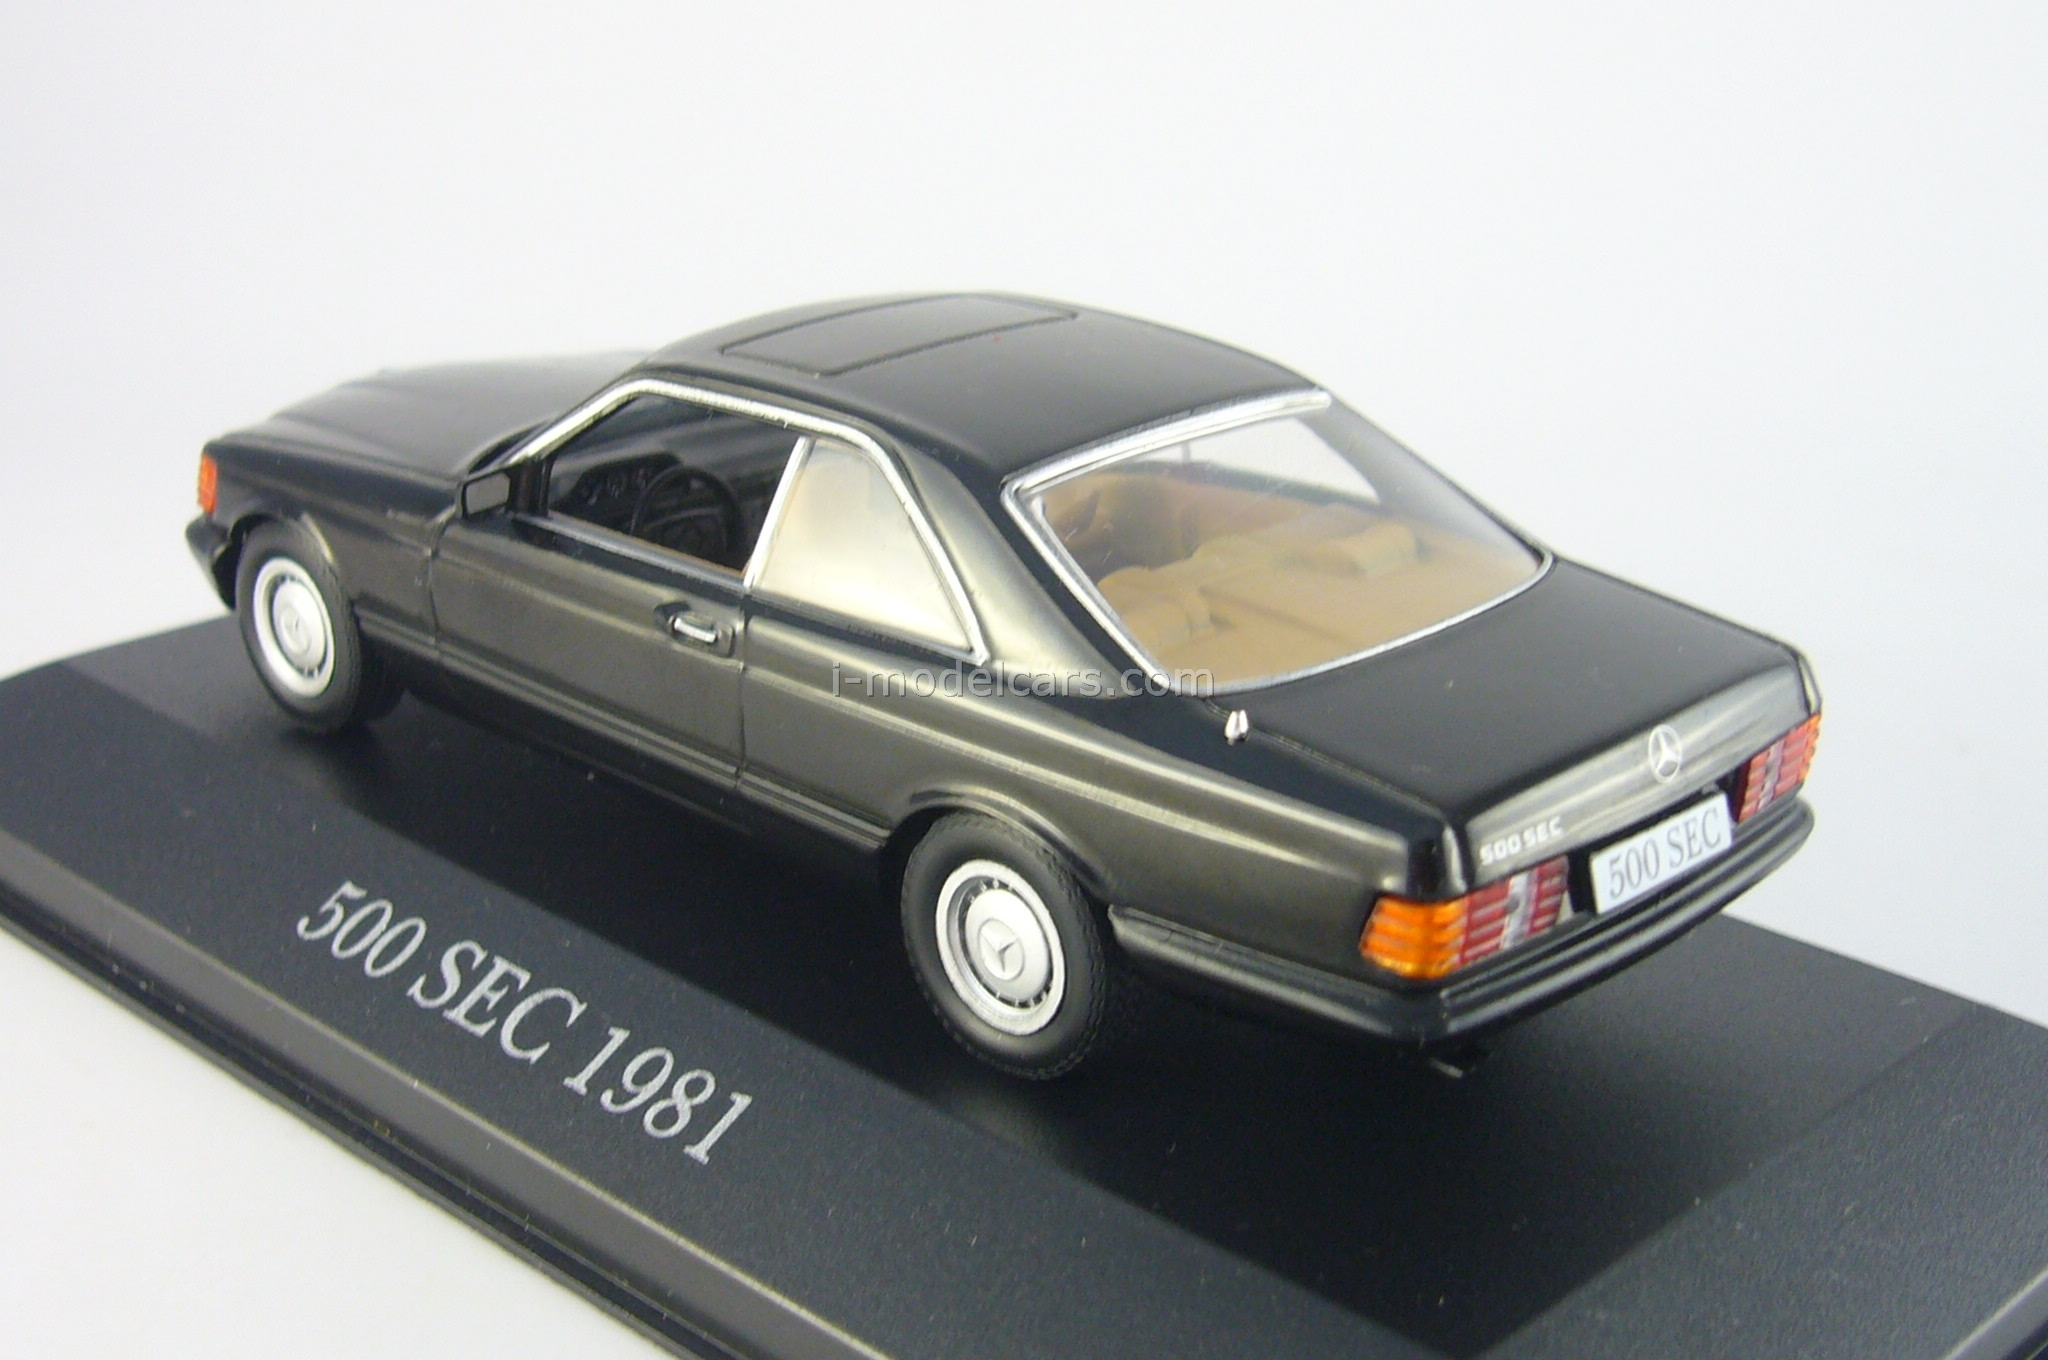 Mercedes 500 SEC 1981 black Altaya 1:43